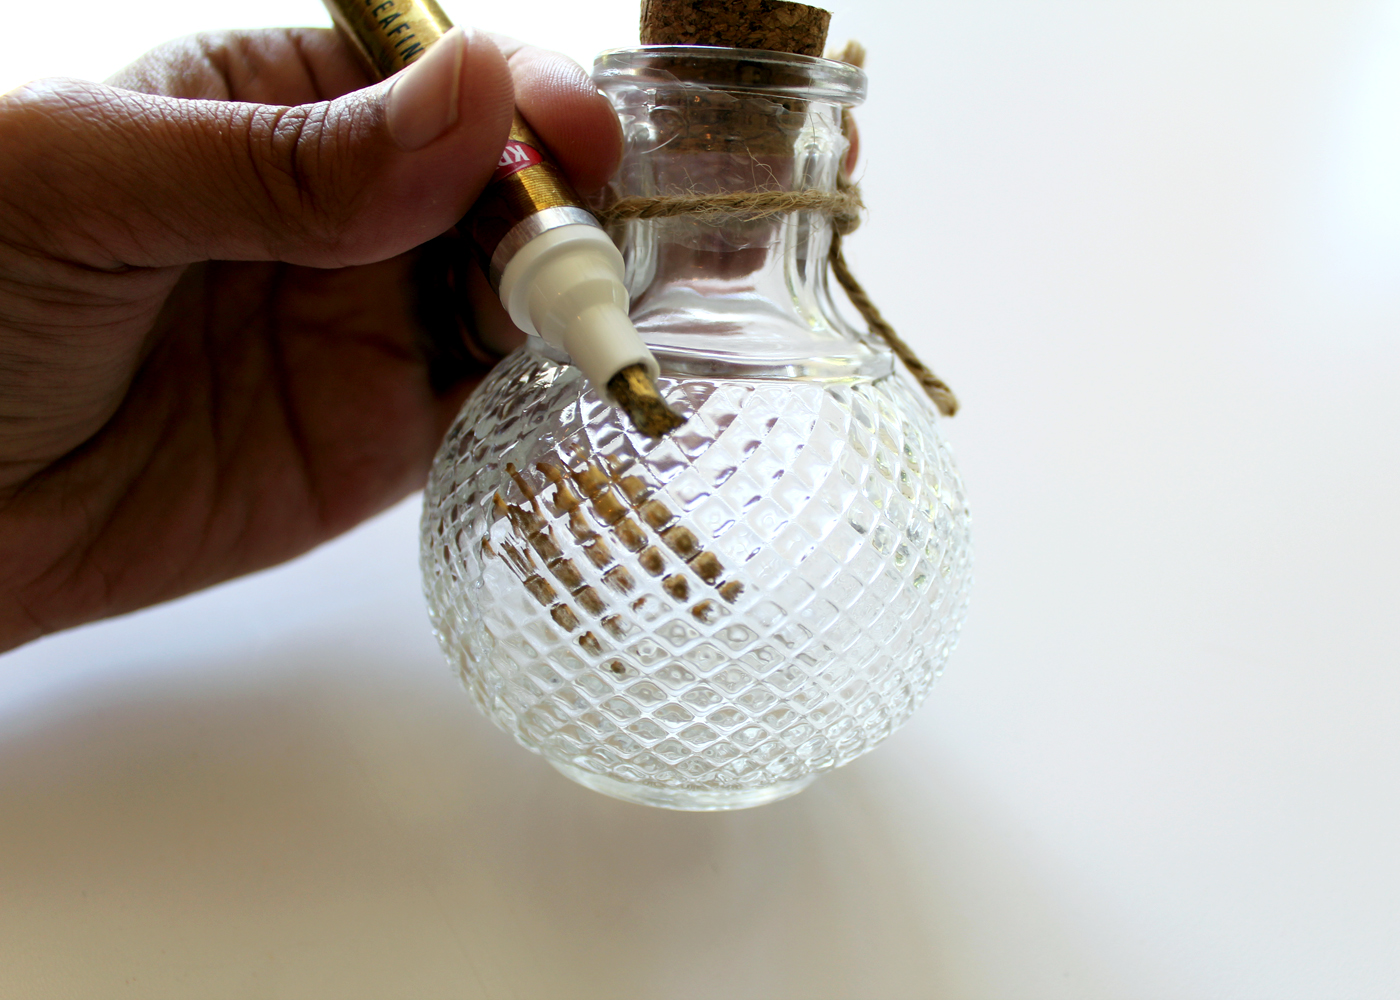 learn how to paint gold leaf onto glass bud vases